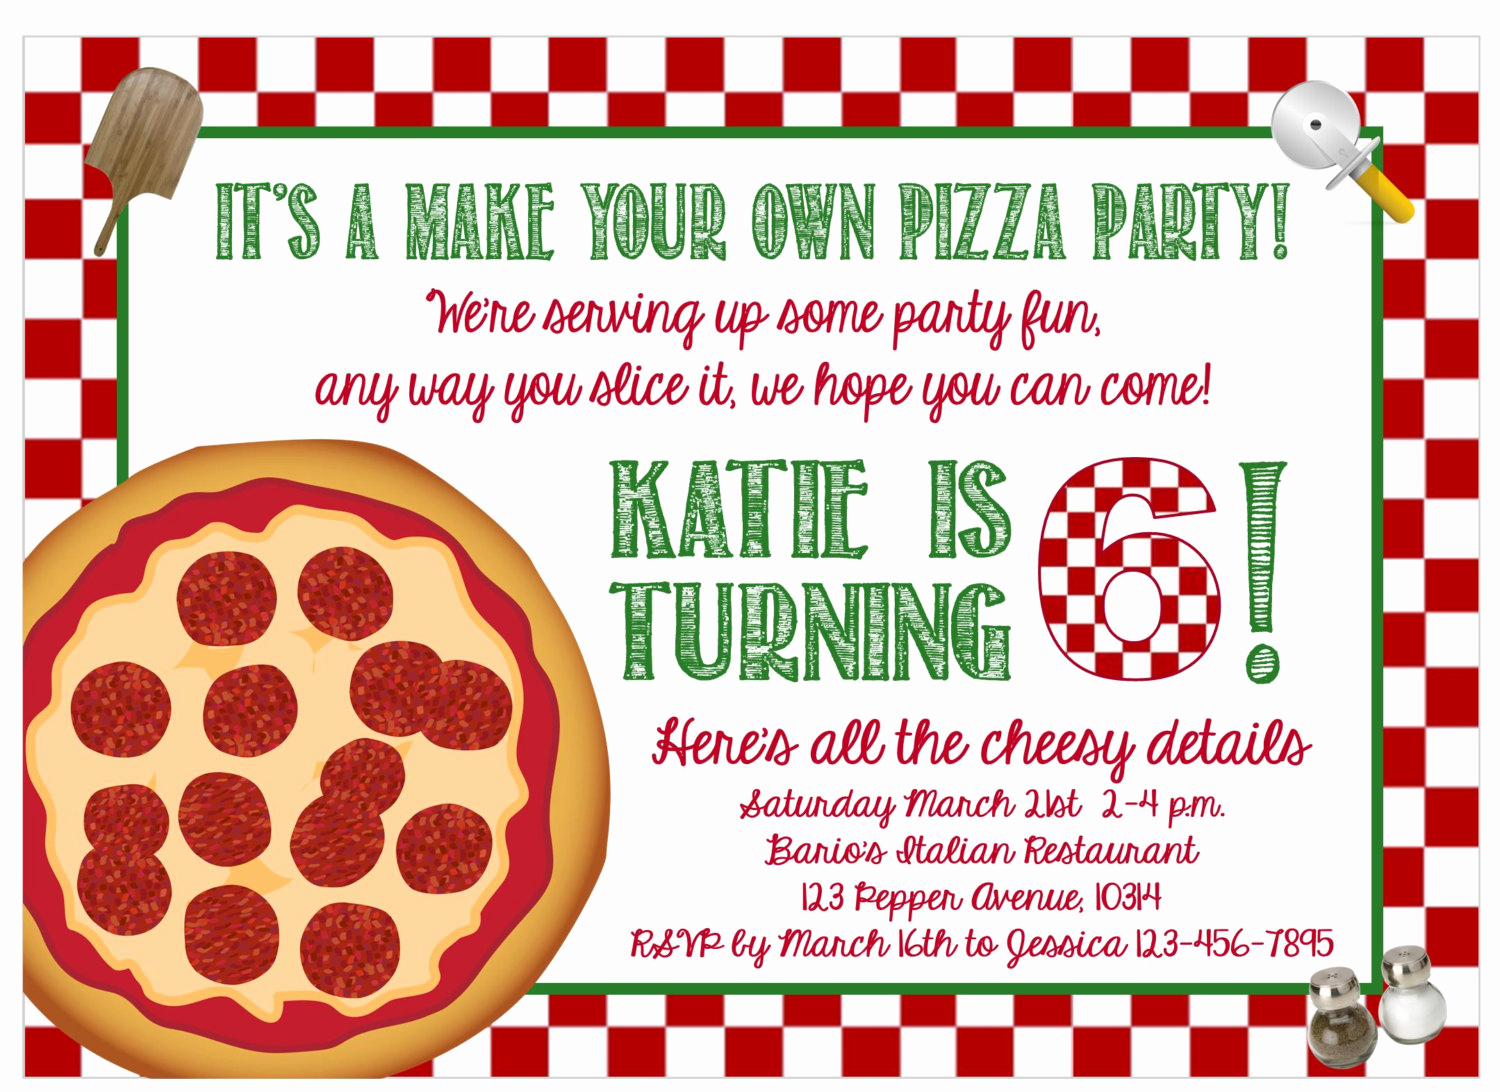 Pizza Party Birthday Invitation Unique Print at Home Make Your Own Pizza Party